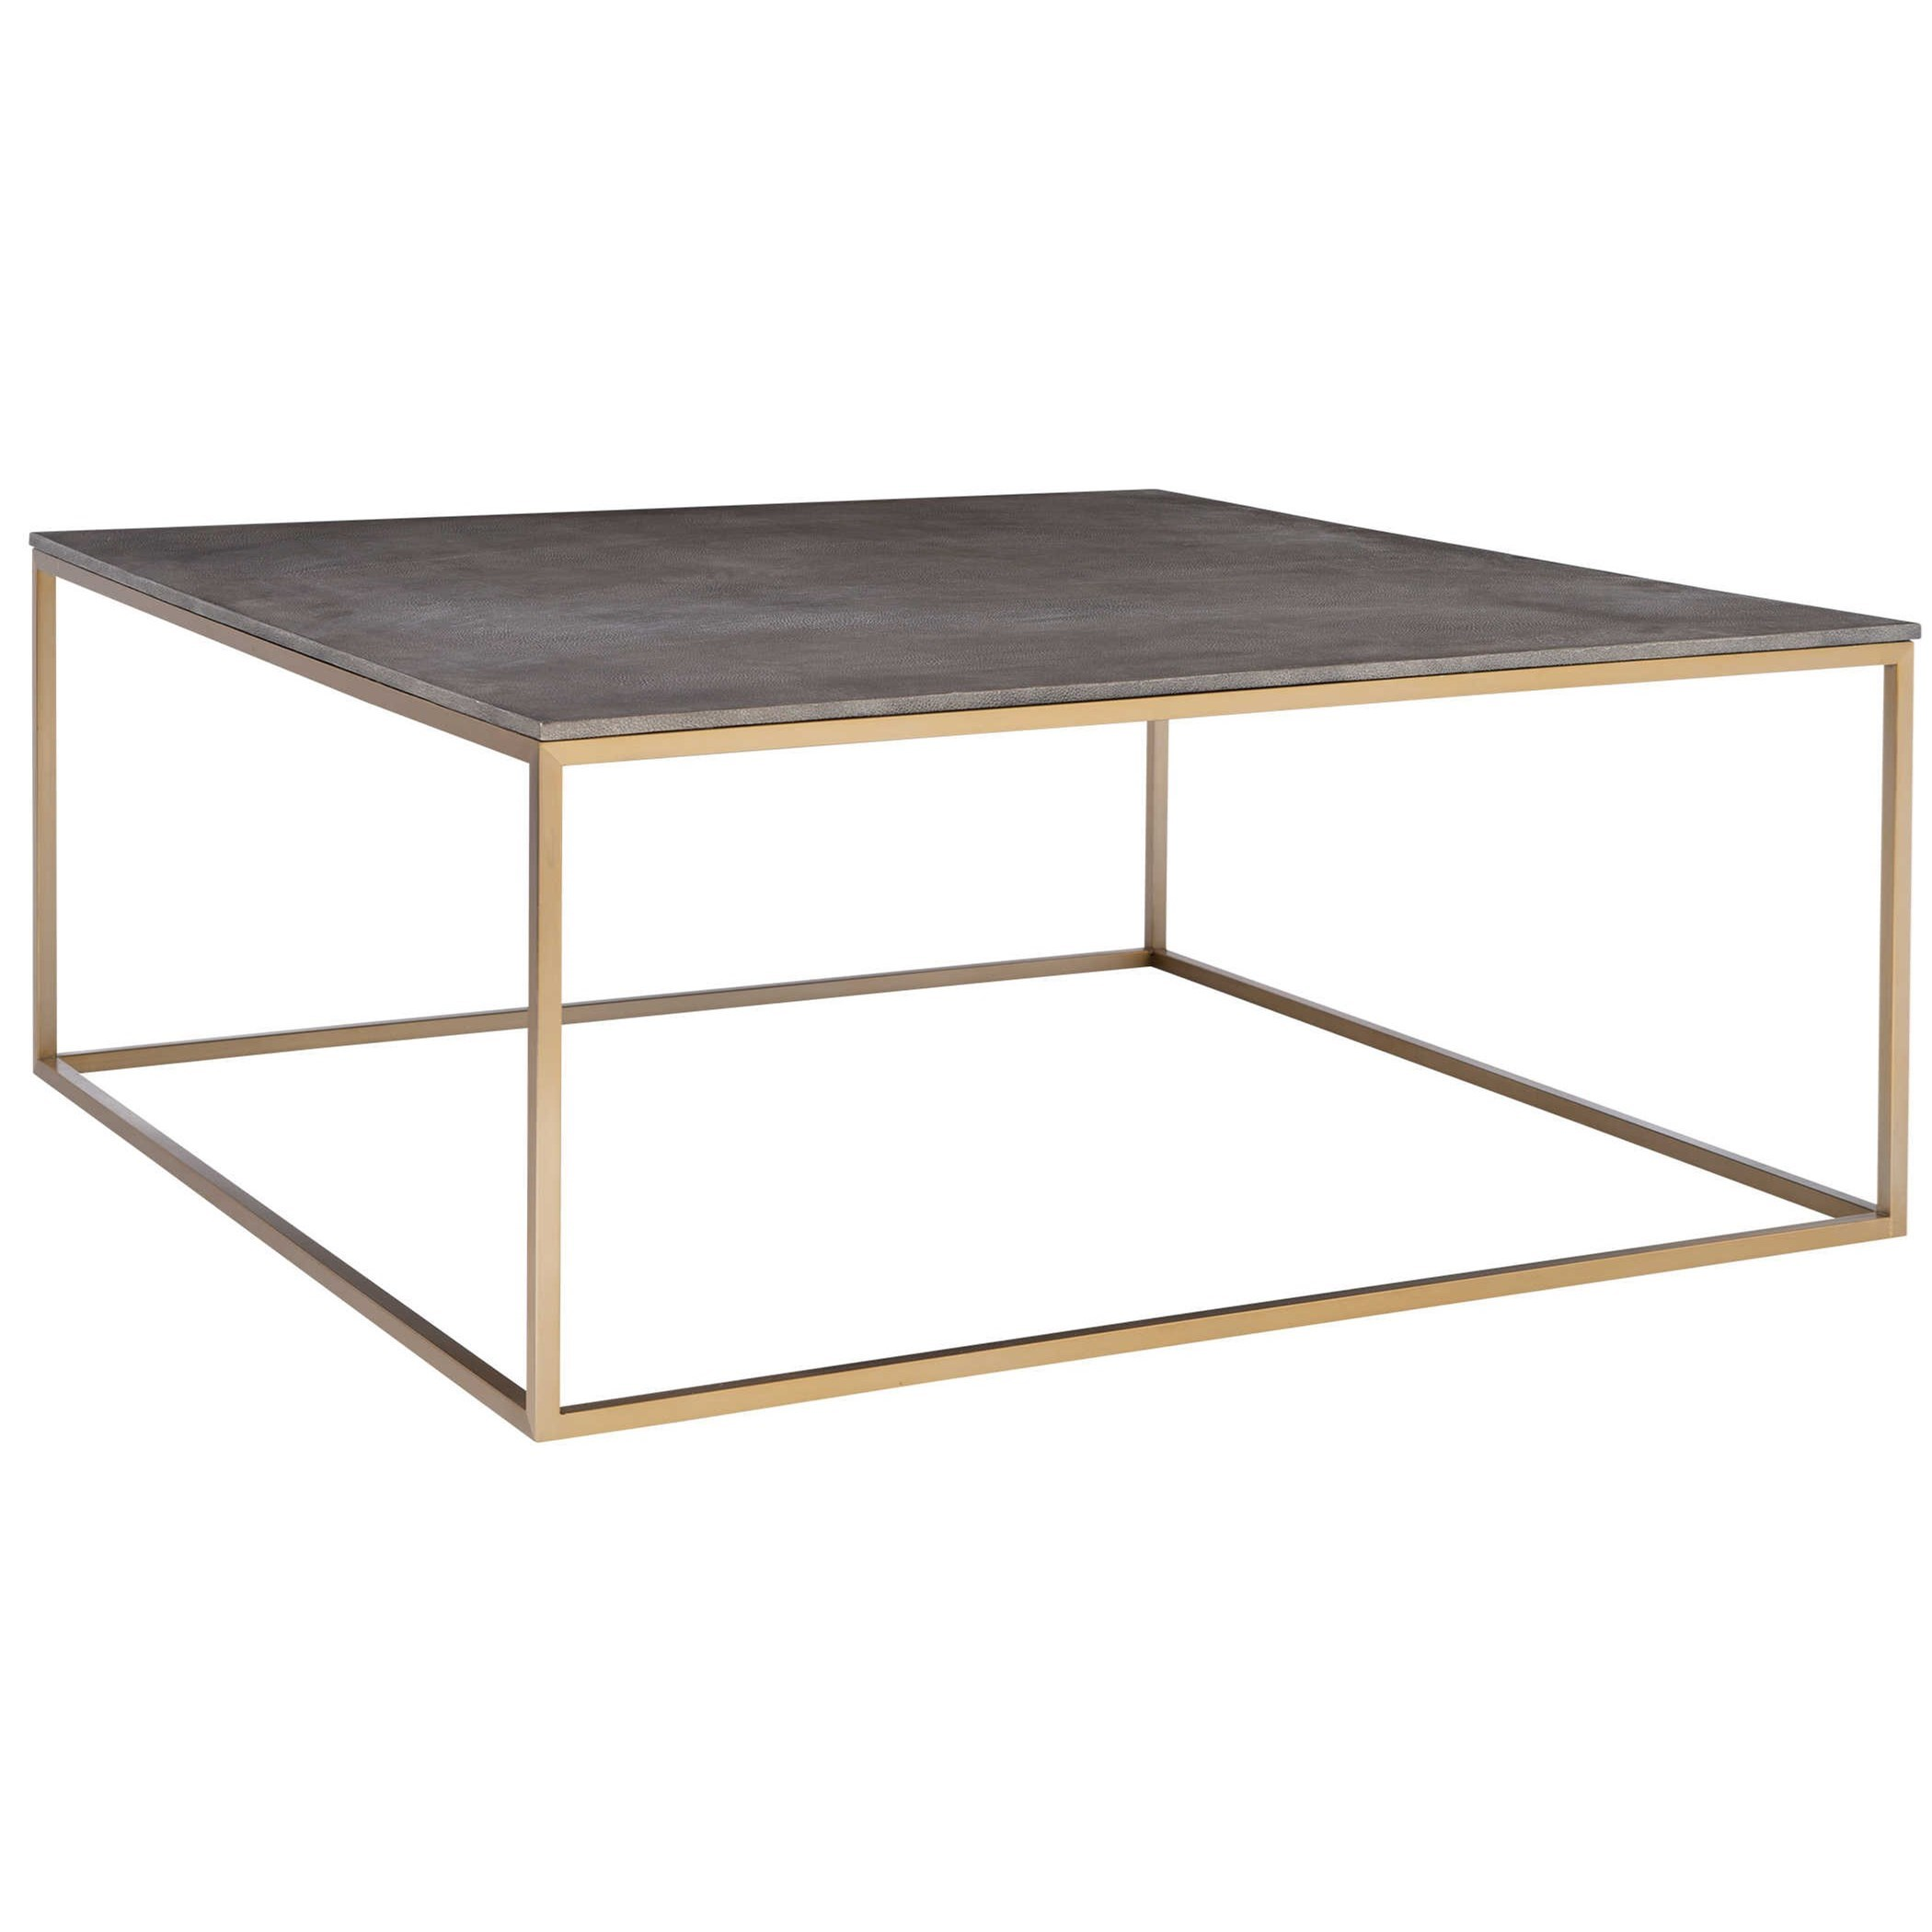 Accent Furniture - Occasional Tables Trebon Modern Coffee Table by Uttermost at Reid's Furniture